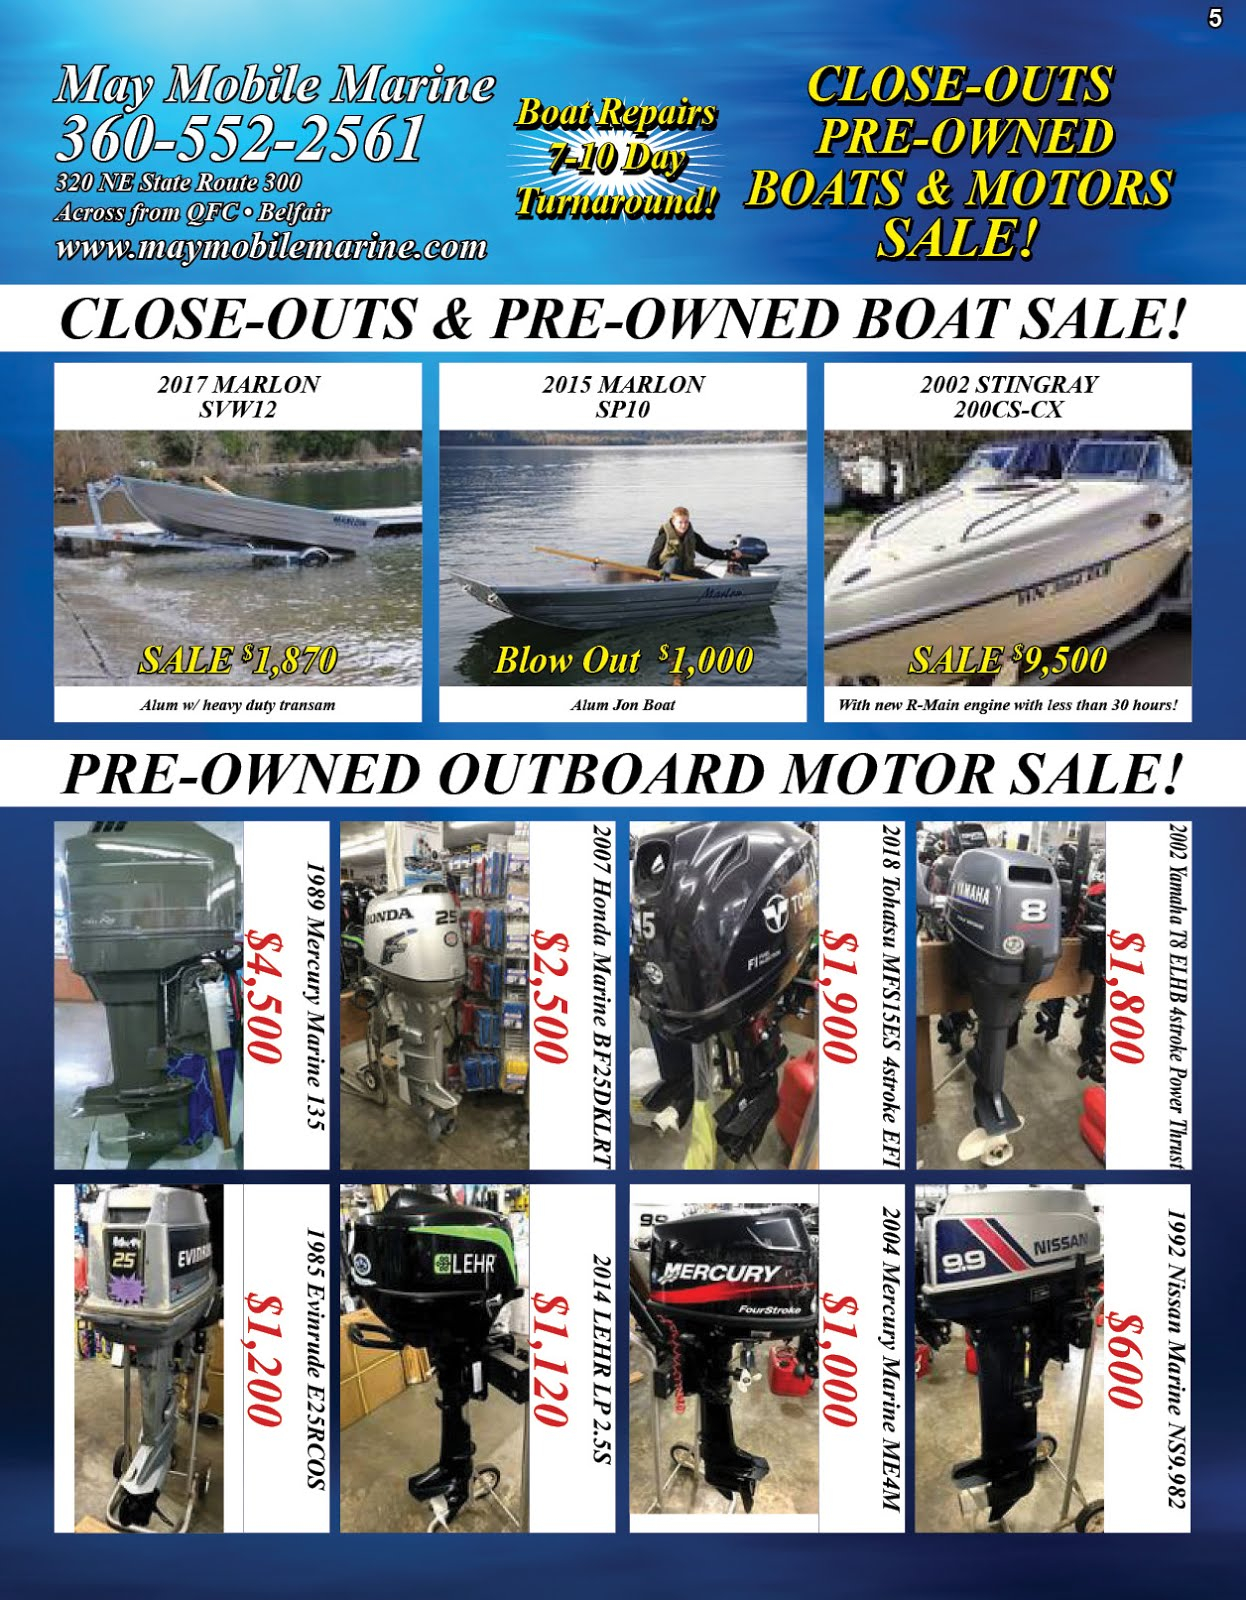 May Mobile Marine Pre-Owned Boats & Outboard Motor Sale!!